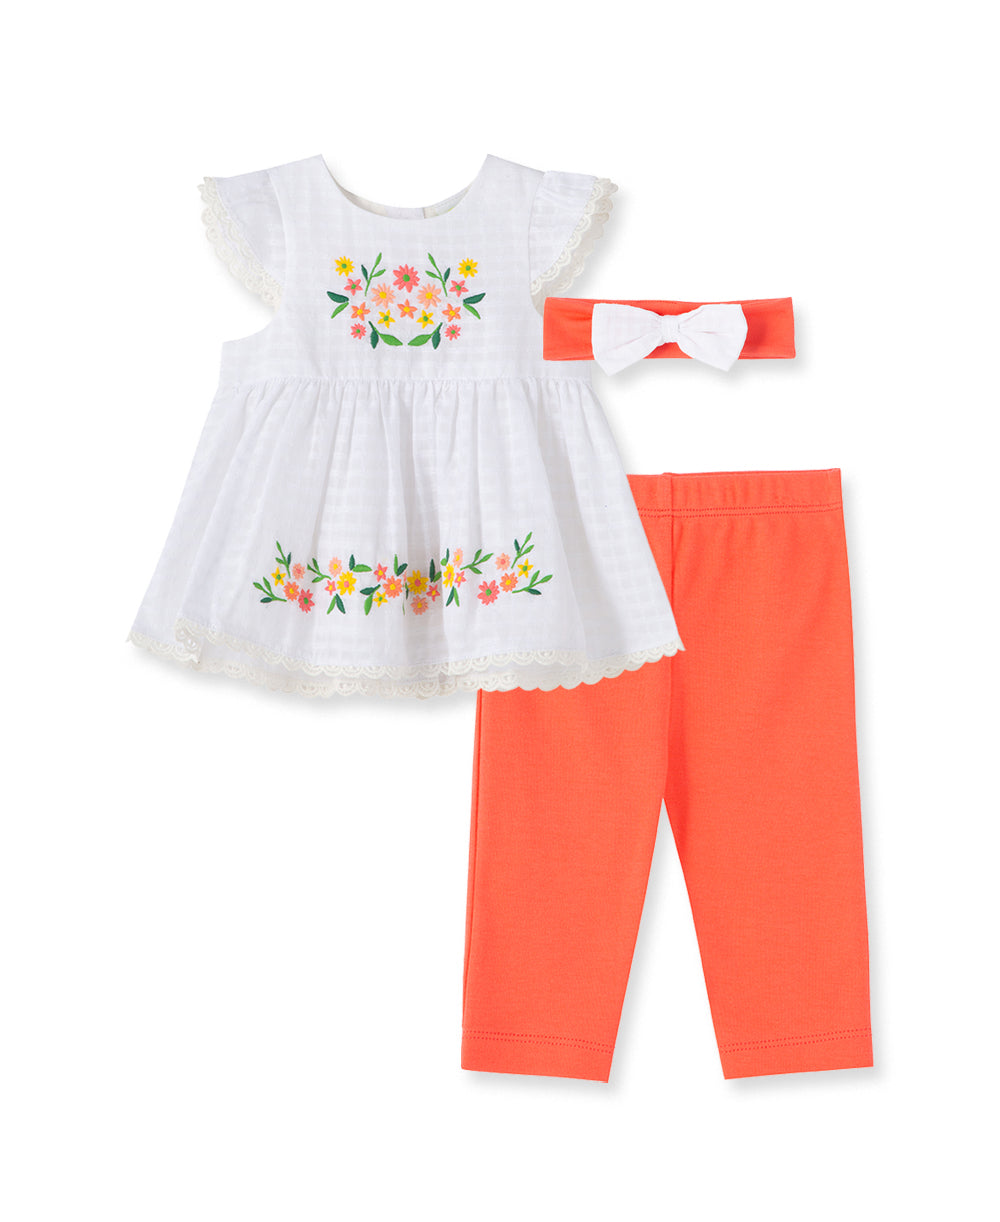 Floral Embroidery Woven Infant Tunic Set